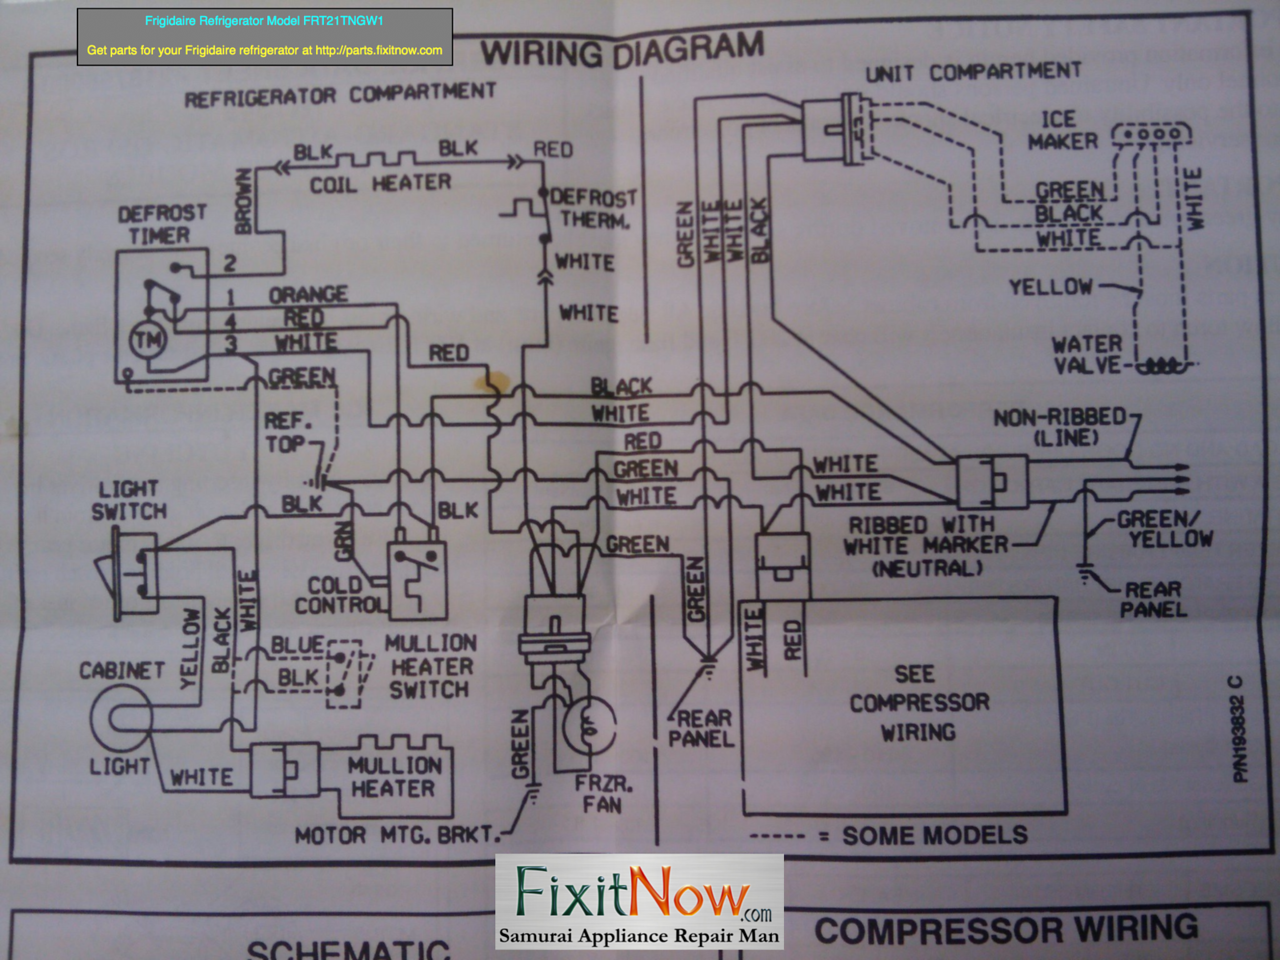 wiring diagrams and schematics appliantology rh appliantology smugmug com understanding appliance wiring diagrams ge appliance wiring diagrams